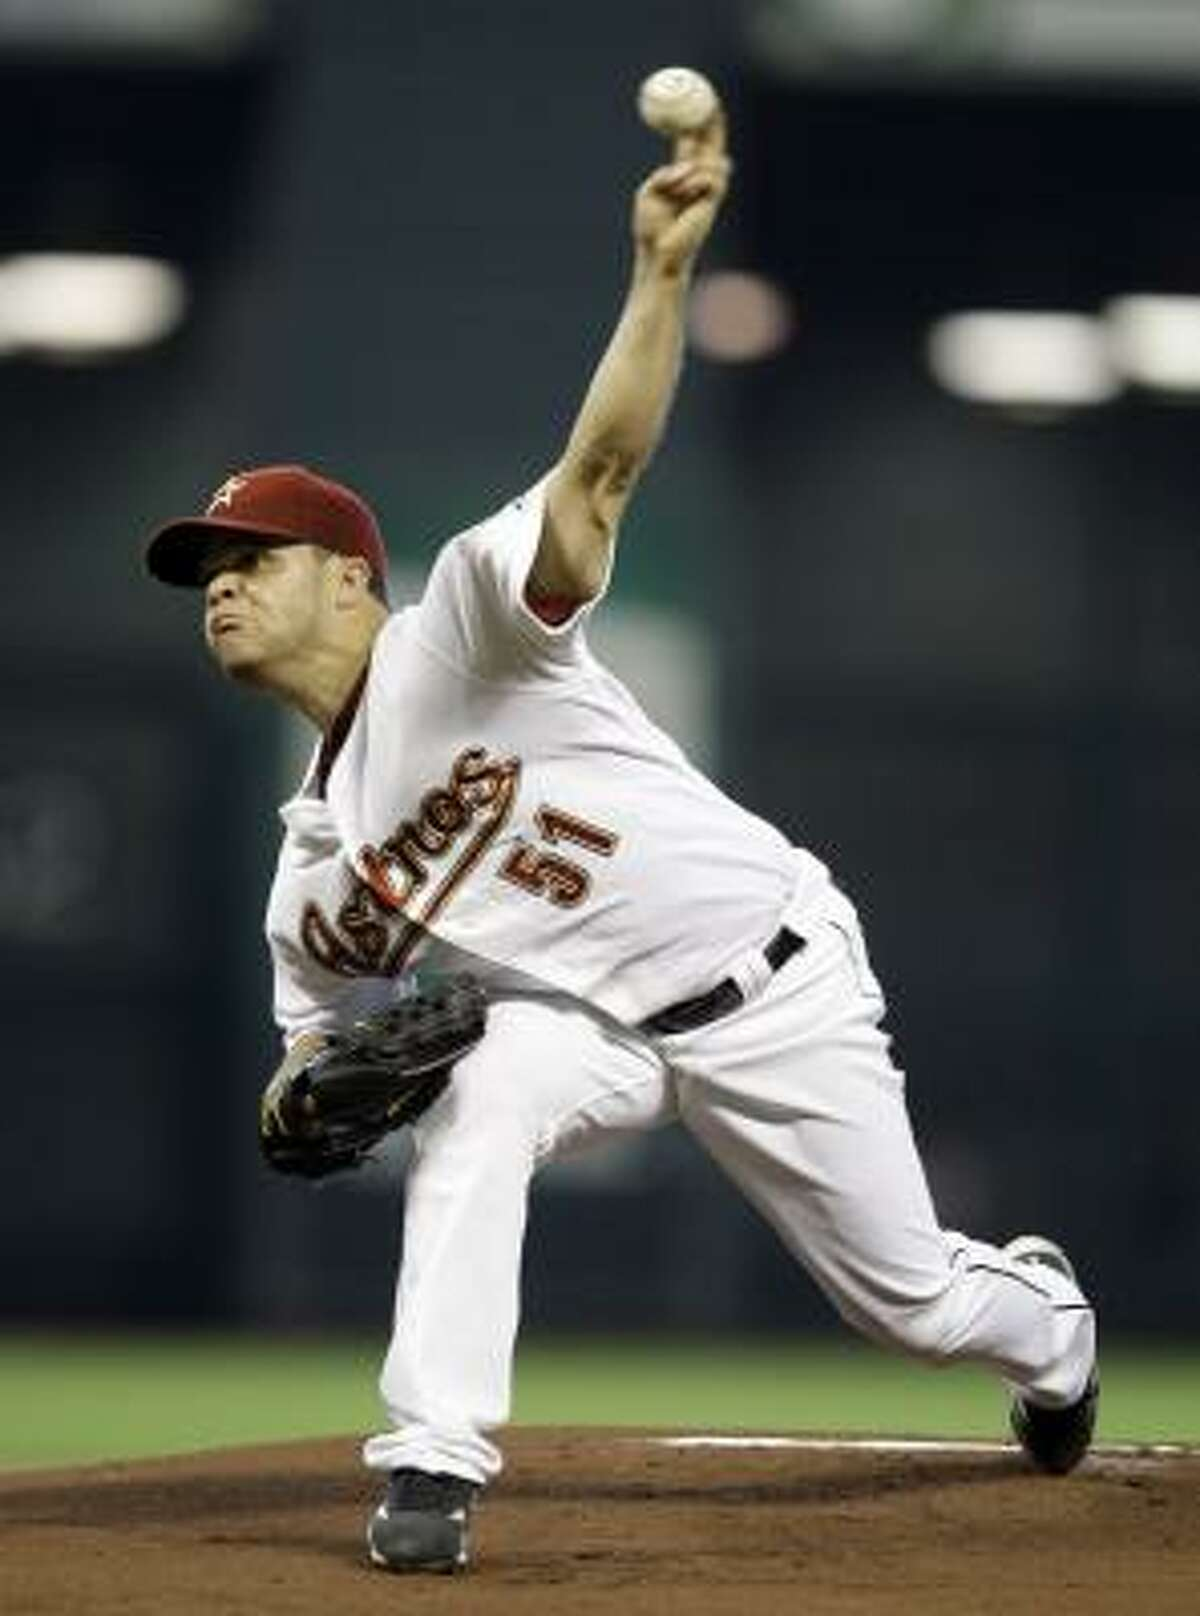 July 8: Astros 5, Pirates 0 Astros starter Wandy Rodriguez throws during the first inning against the Pittsburgh Pirates on Wednesday in Houston. Rodriguez (8-6) went the distance, allowing just five hits on 124 pitches in the shutout.